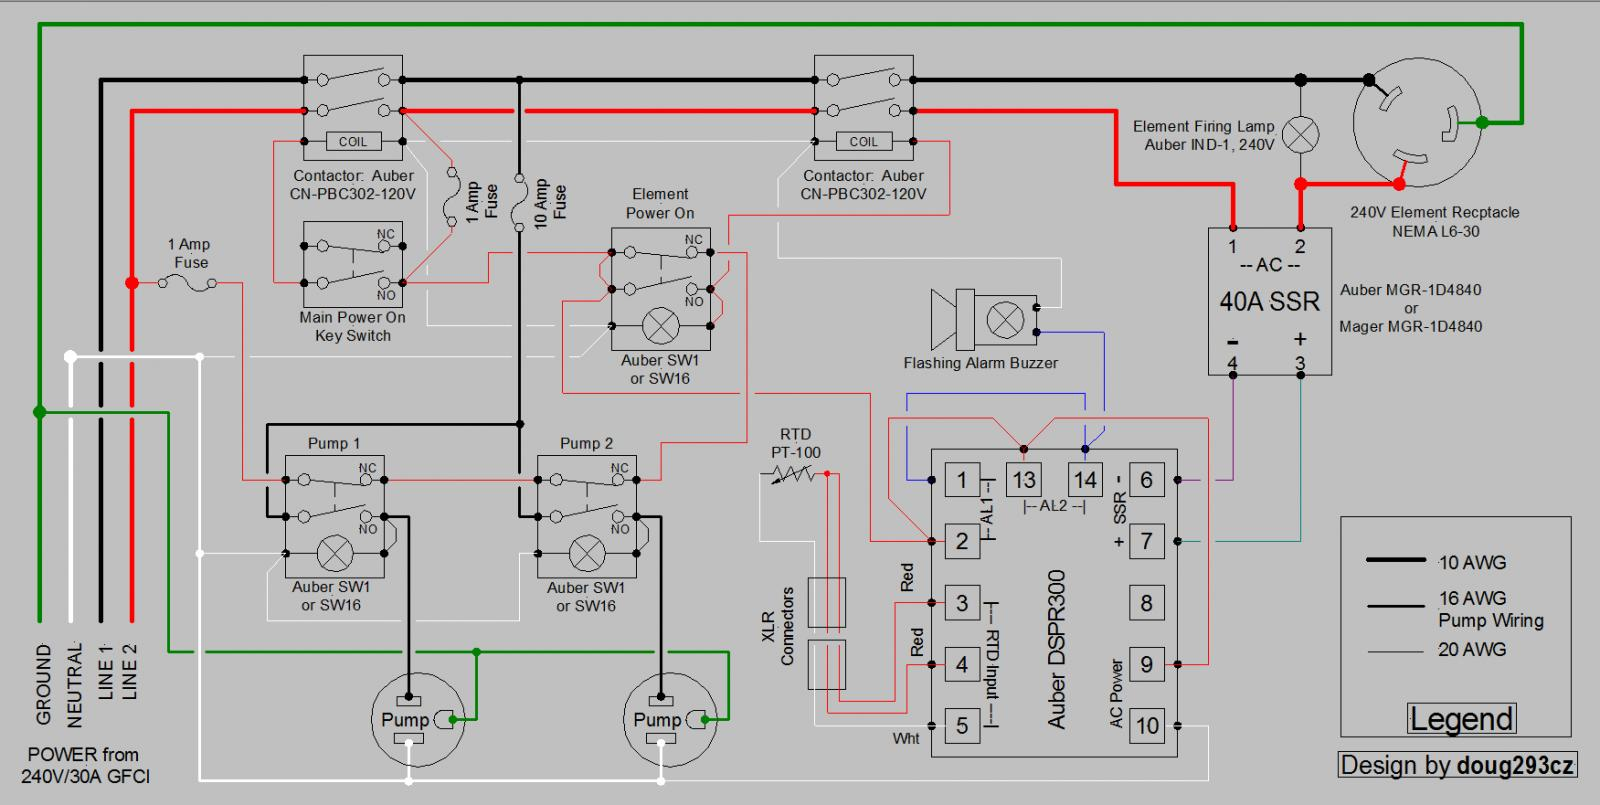 hight resolution of this one uses the dspr300 which has a couple of alarm relays that are not in the dspr120 other than the alarm wiring both ezboils are wired the same way